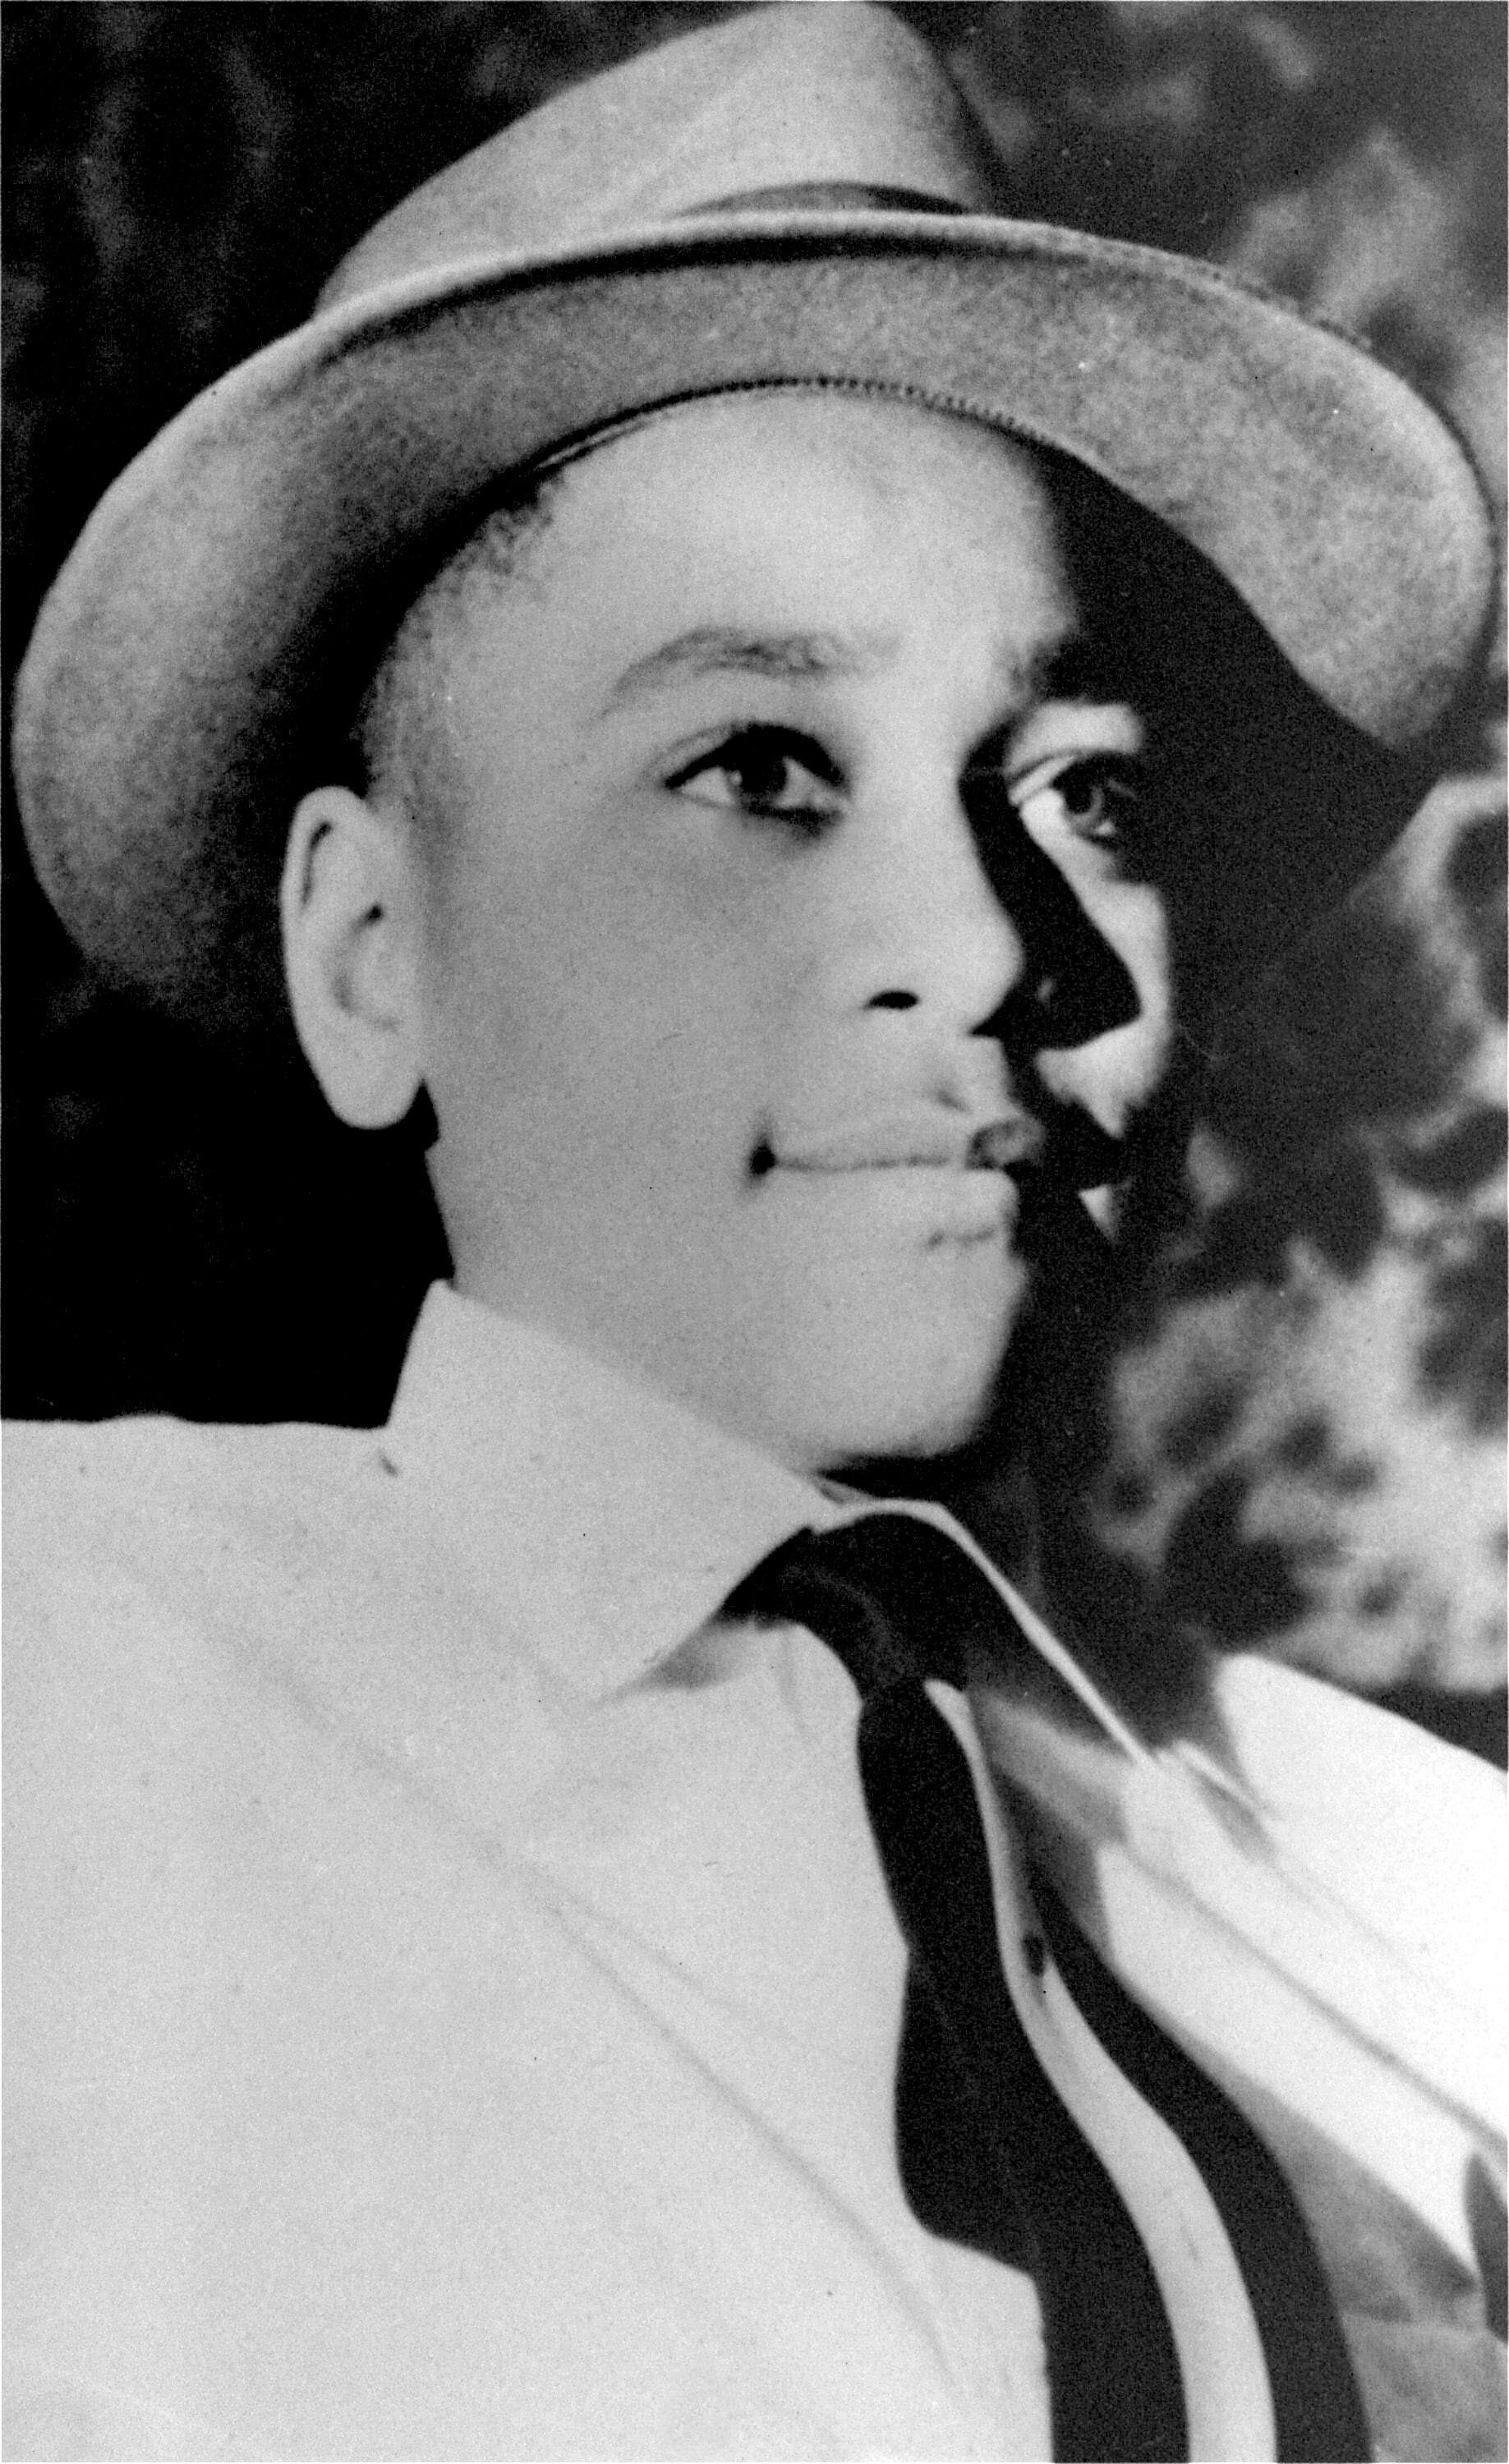 Emmett Till was visiting an uncle in Mississippi when he was kidnapped, tortured and then murdered after being accused of whi